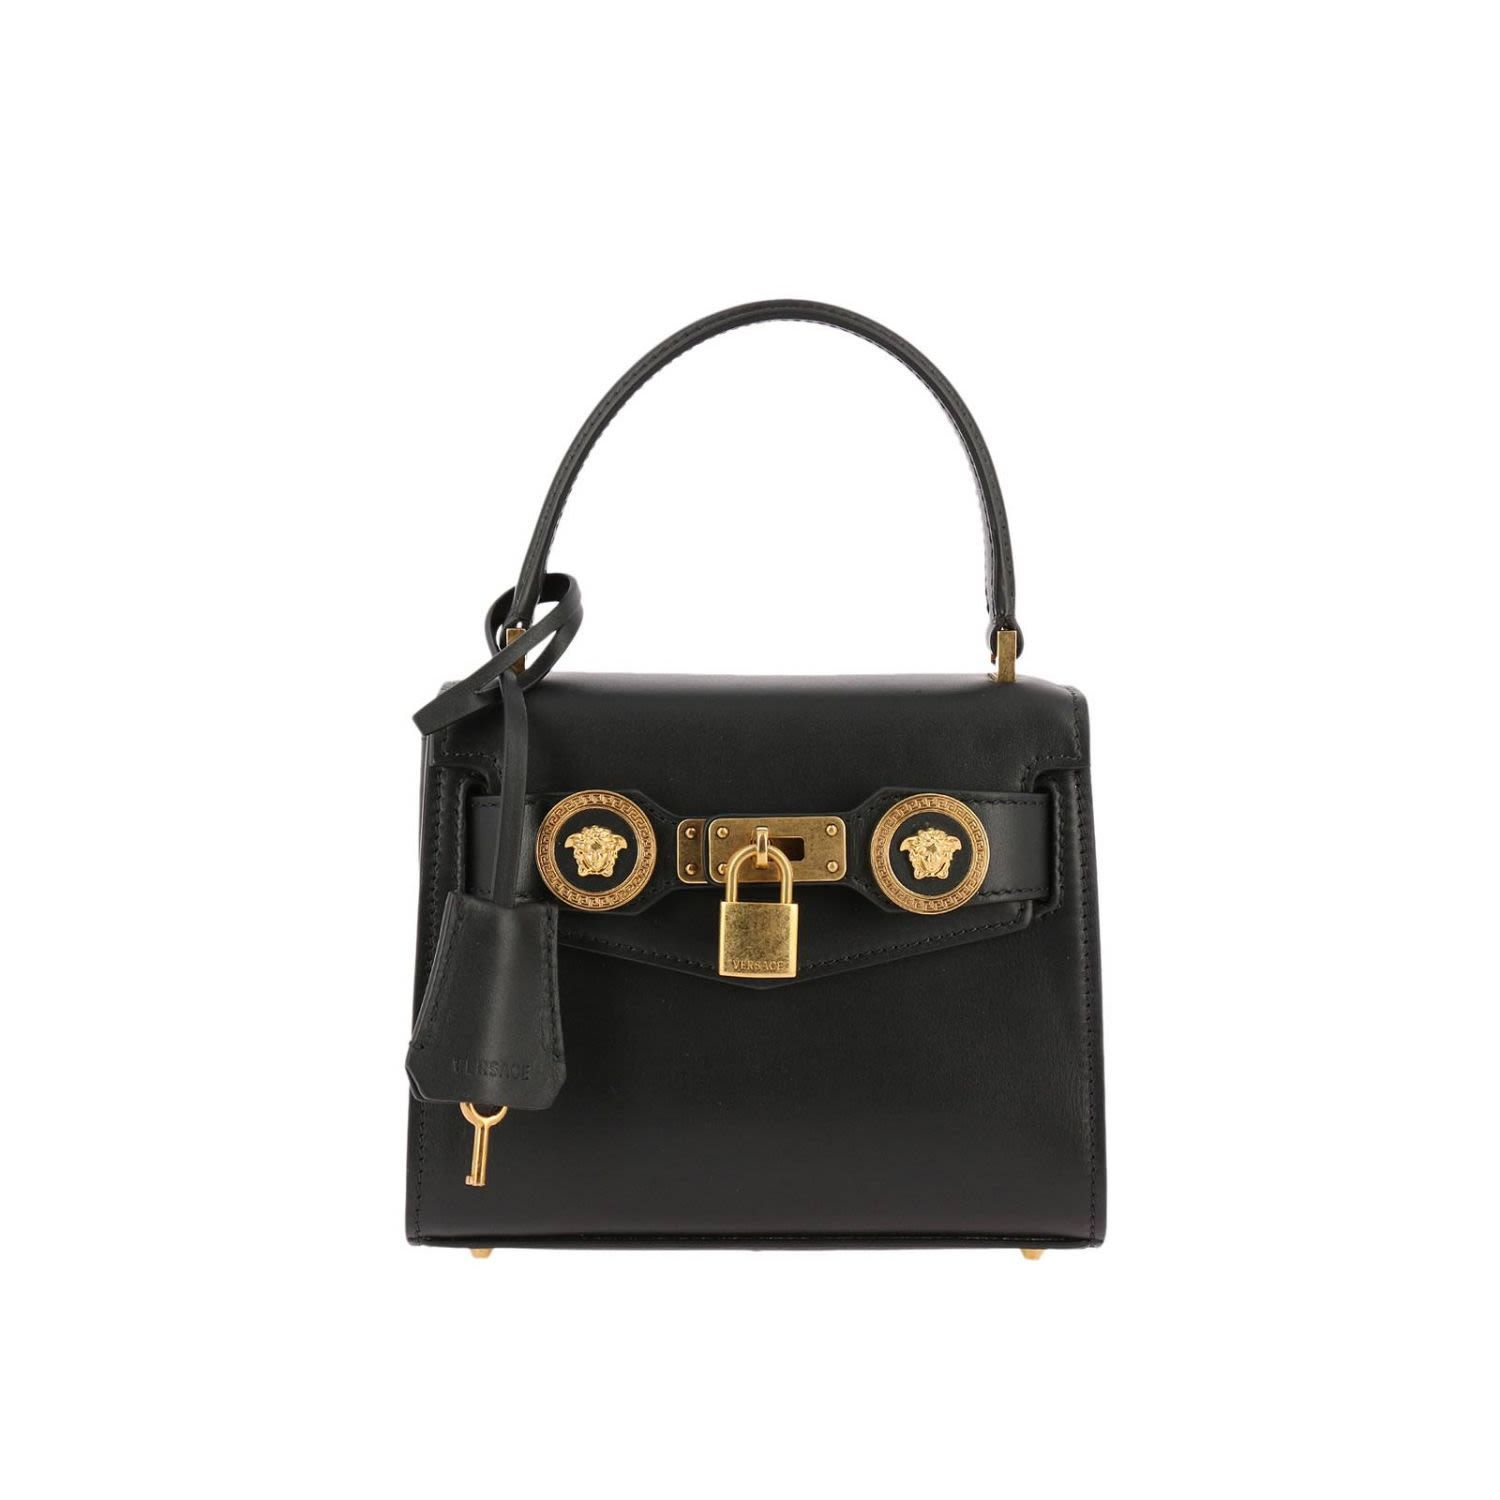 43dea86042 VERSACE SHOULDER BAG SHOULDER BAG WOMEN VERSACE. #versace #bags #shoulder  bags #